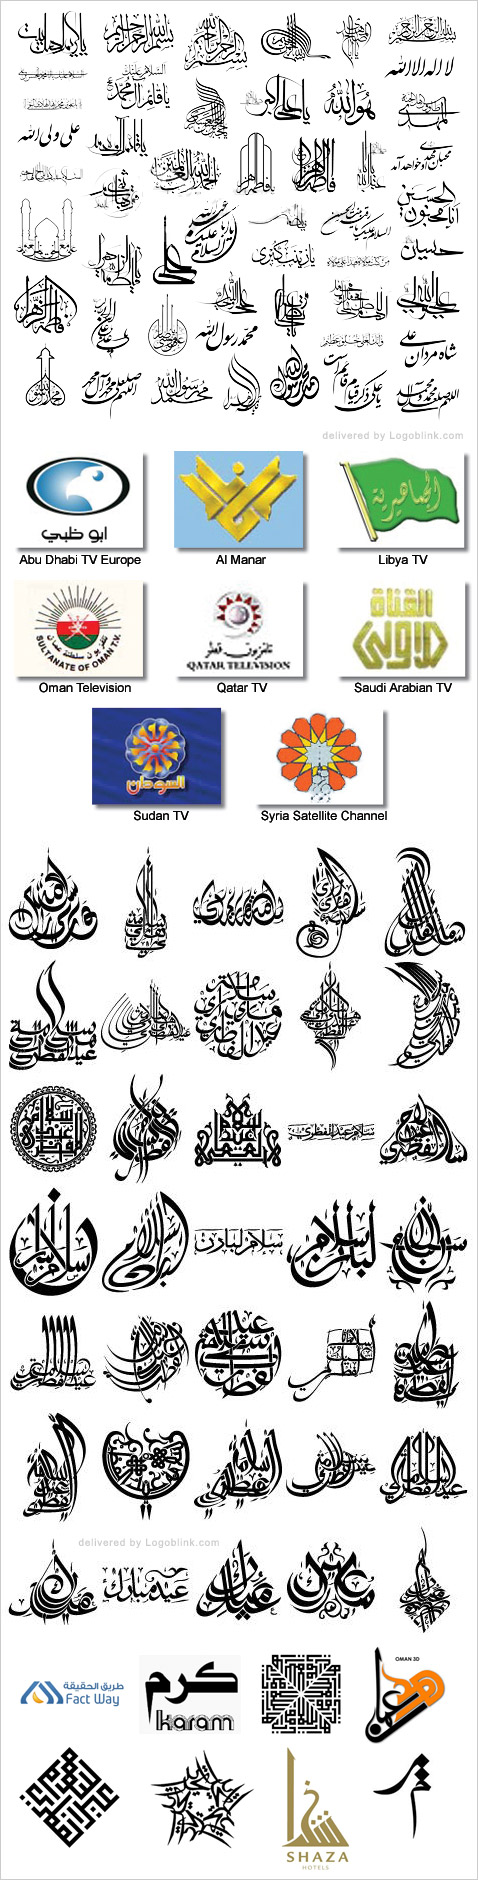 Arabic calligraphy logo set